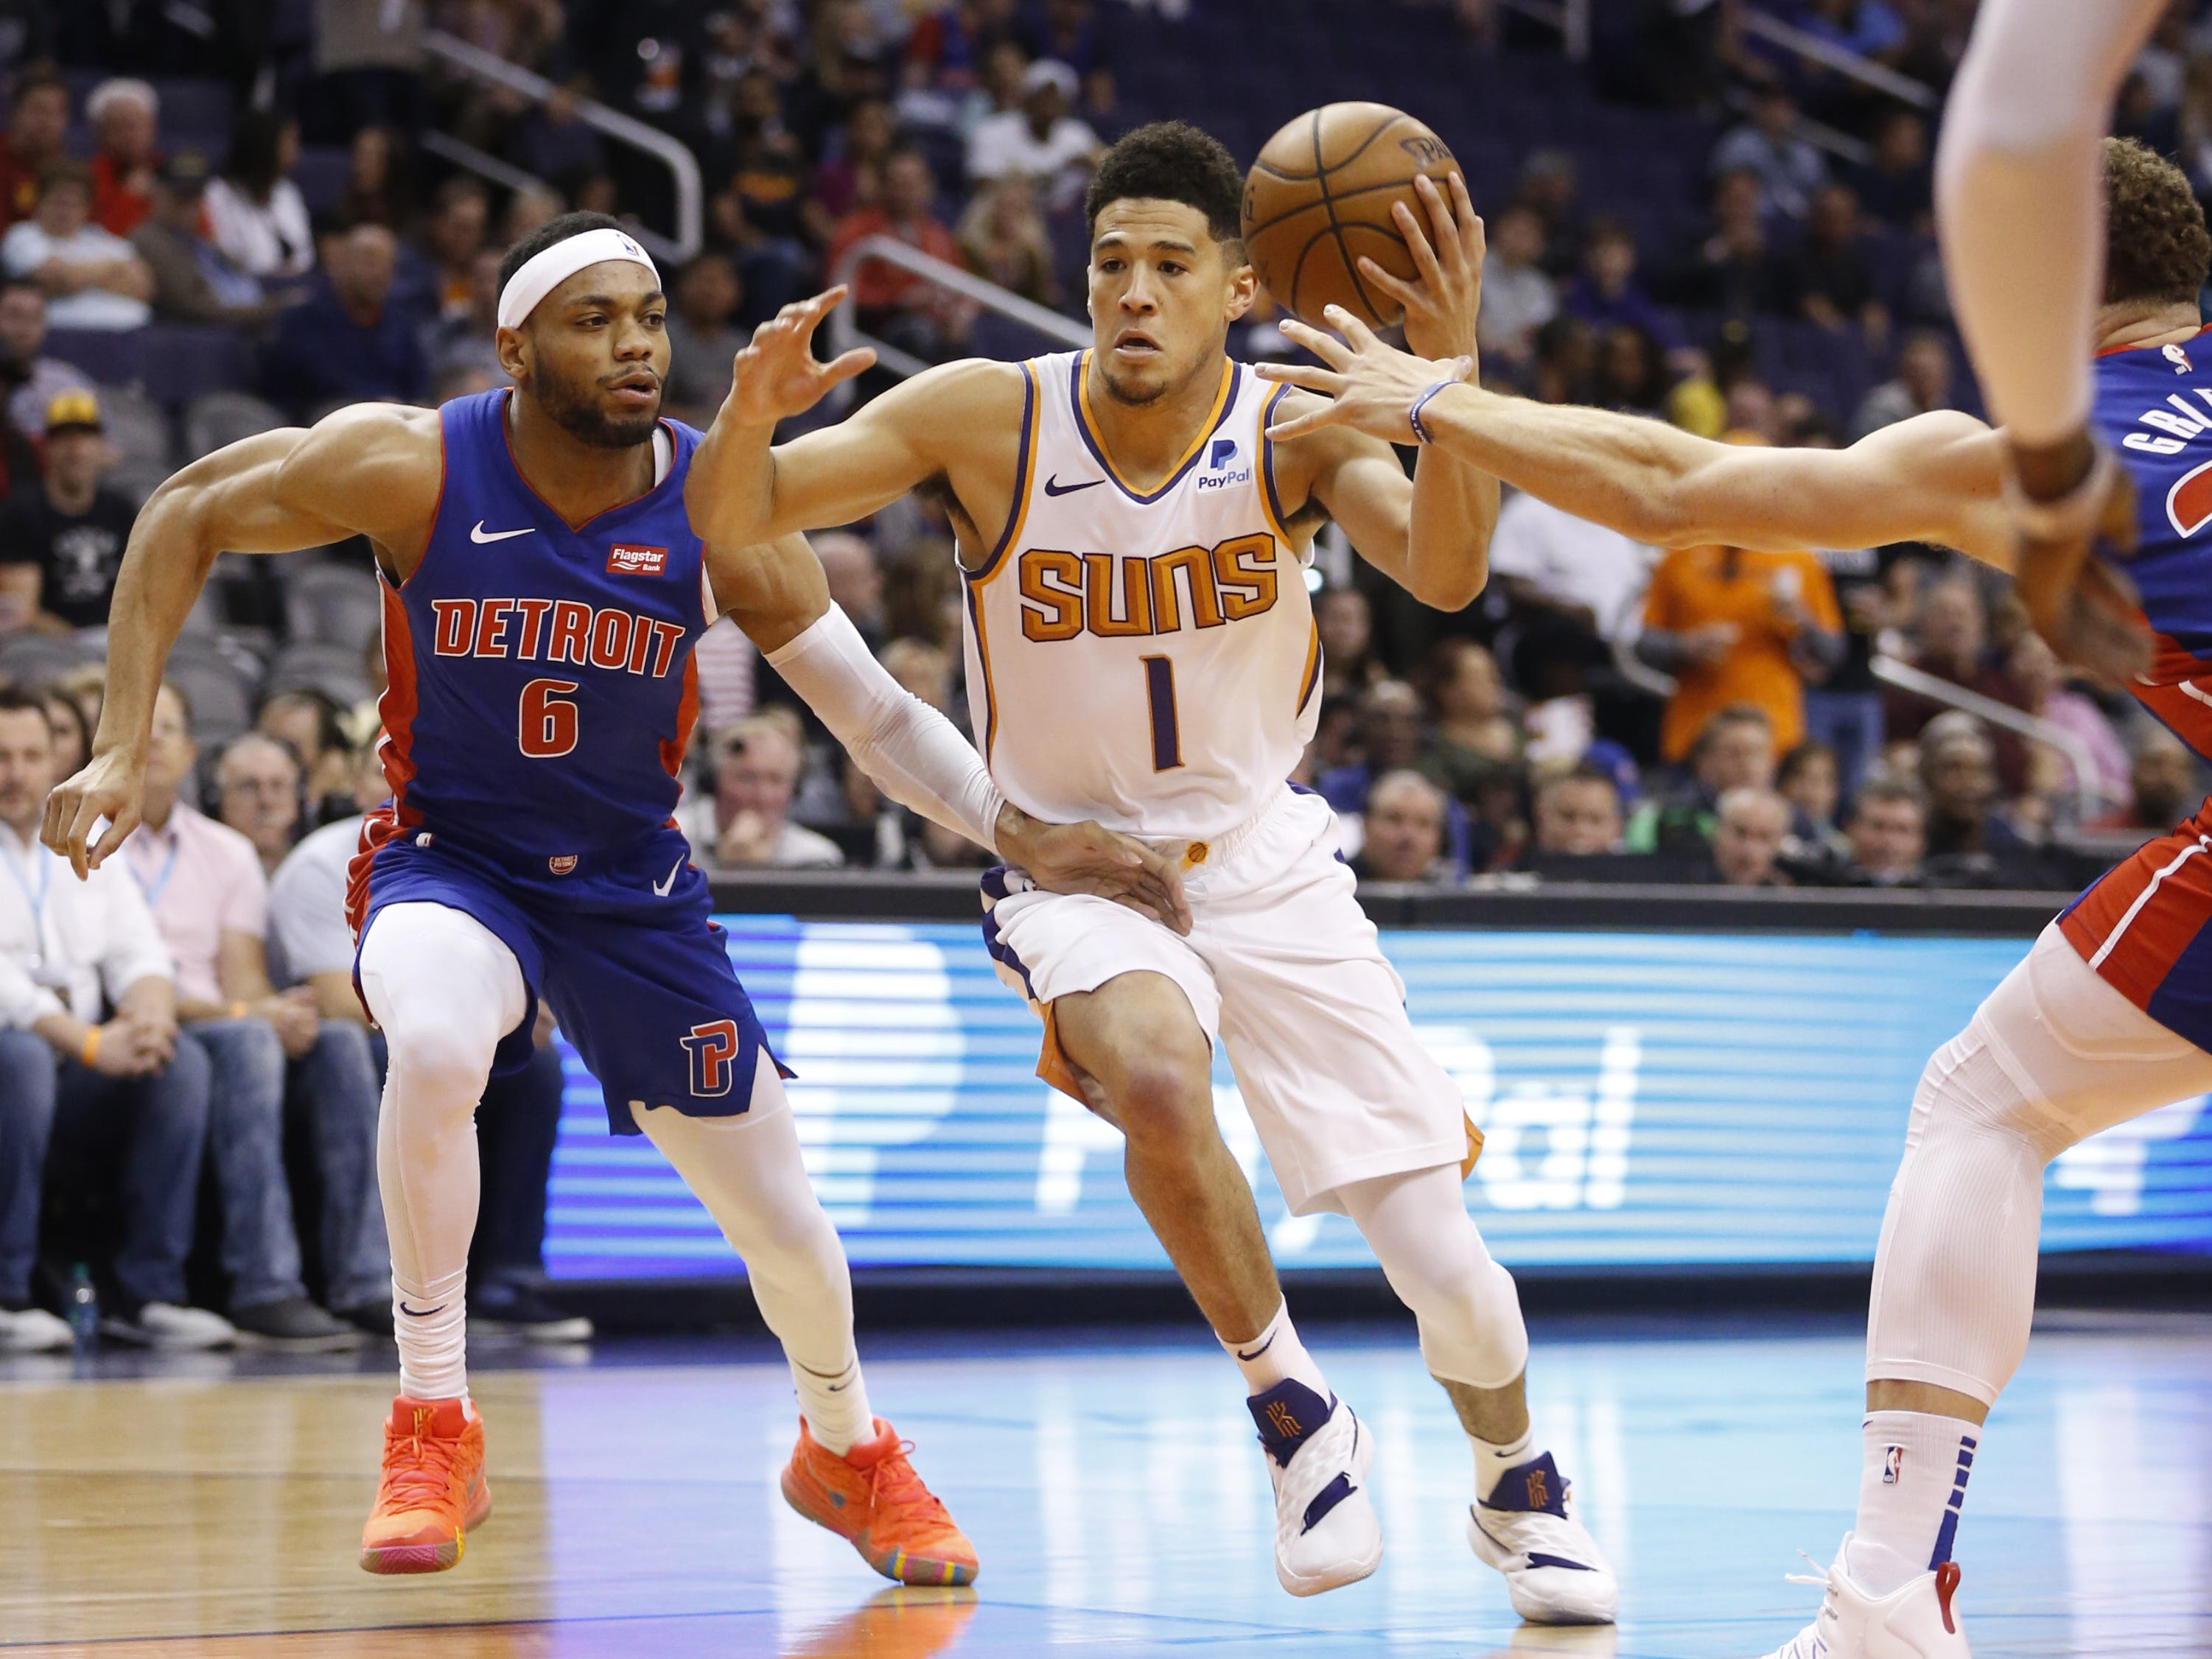 Suns' Devin Booker (1) dribbles into the lane against the Pistons' Bruce Brown (6) during the first half at the Talking Stick Resort Arena in Phoenix, Ariz. on March 21, 2019.